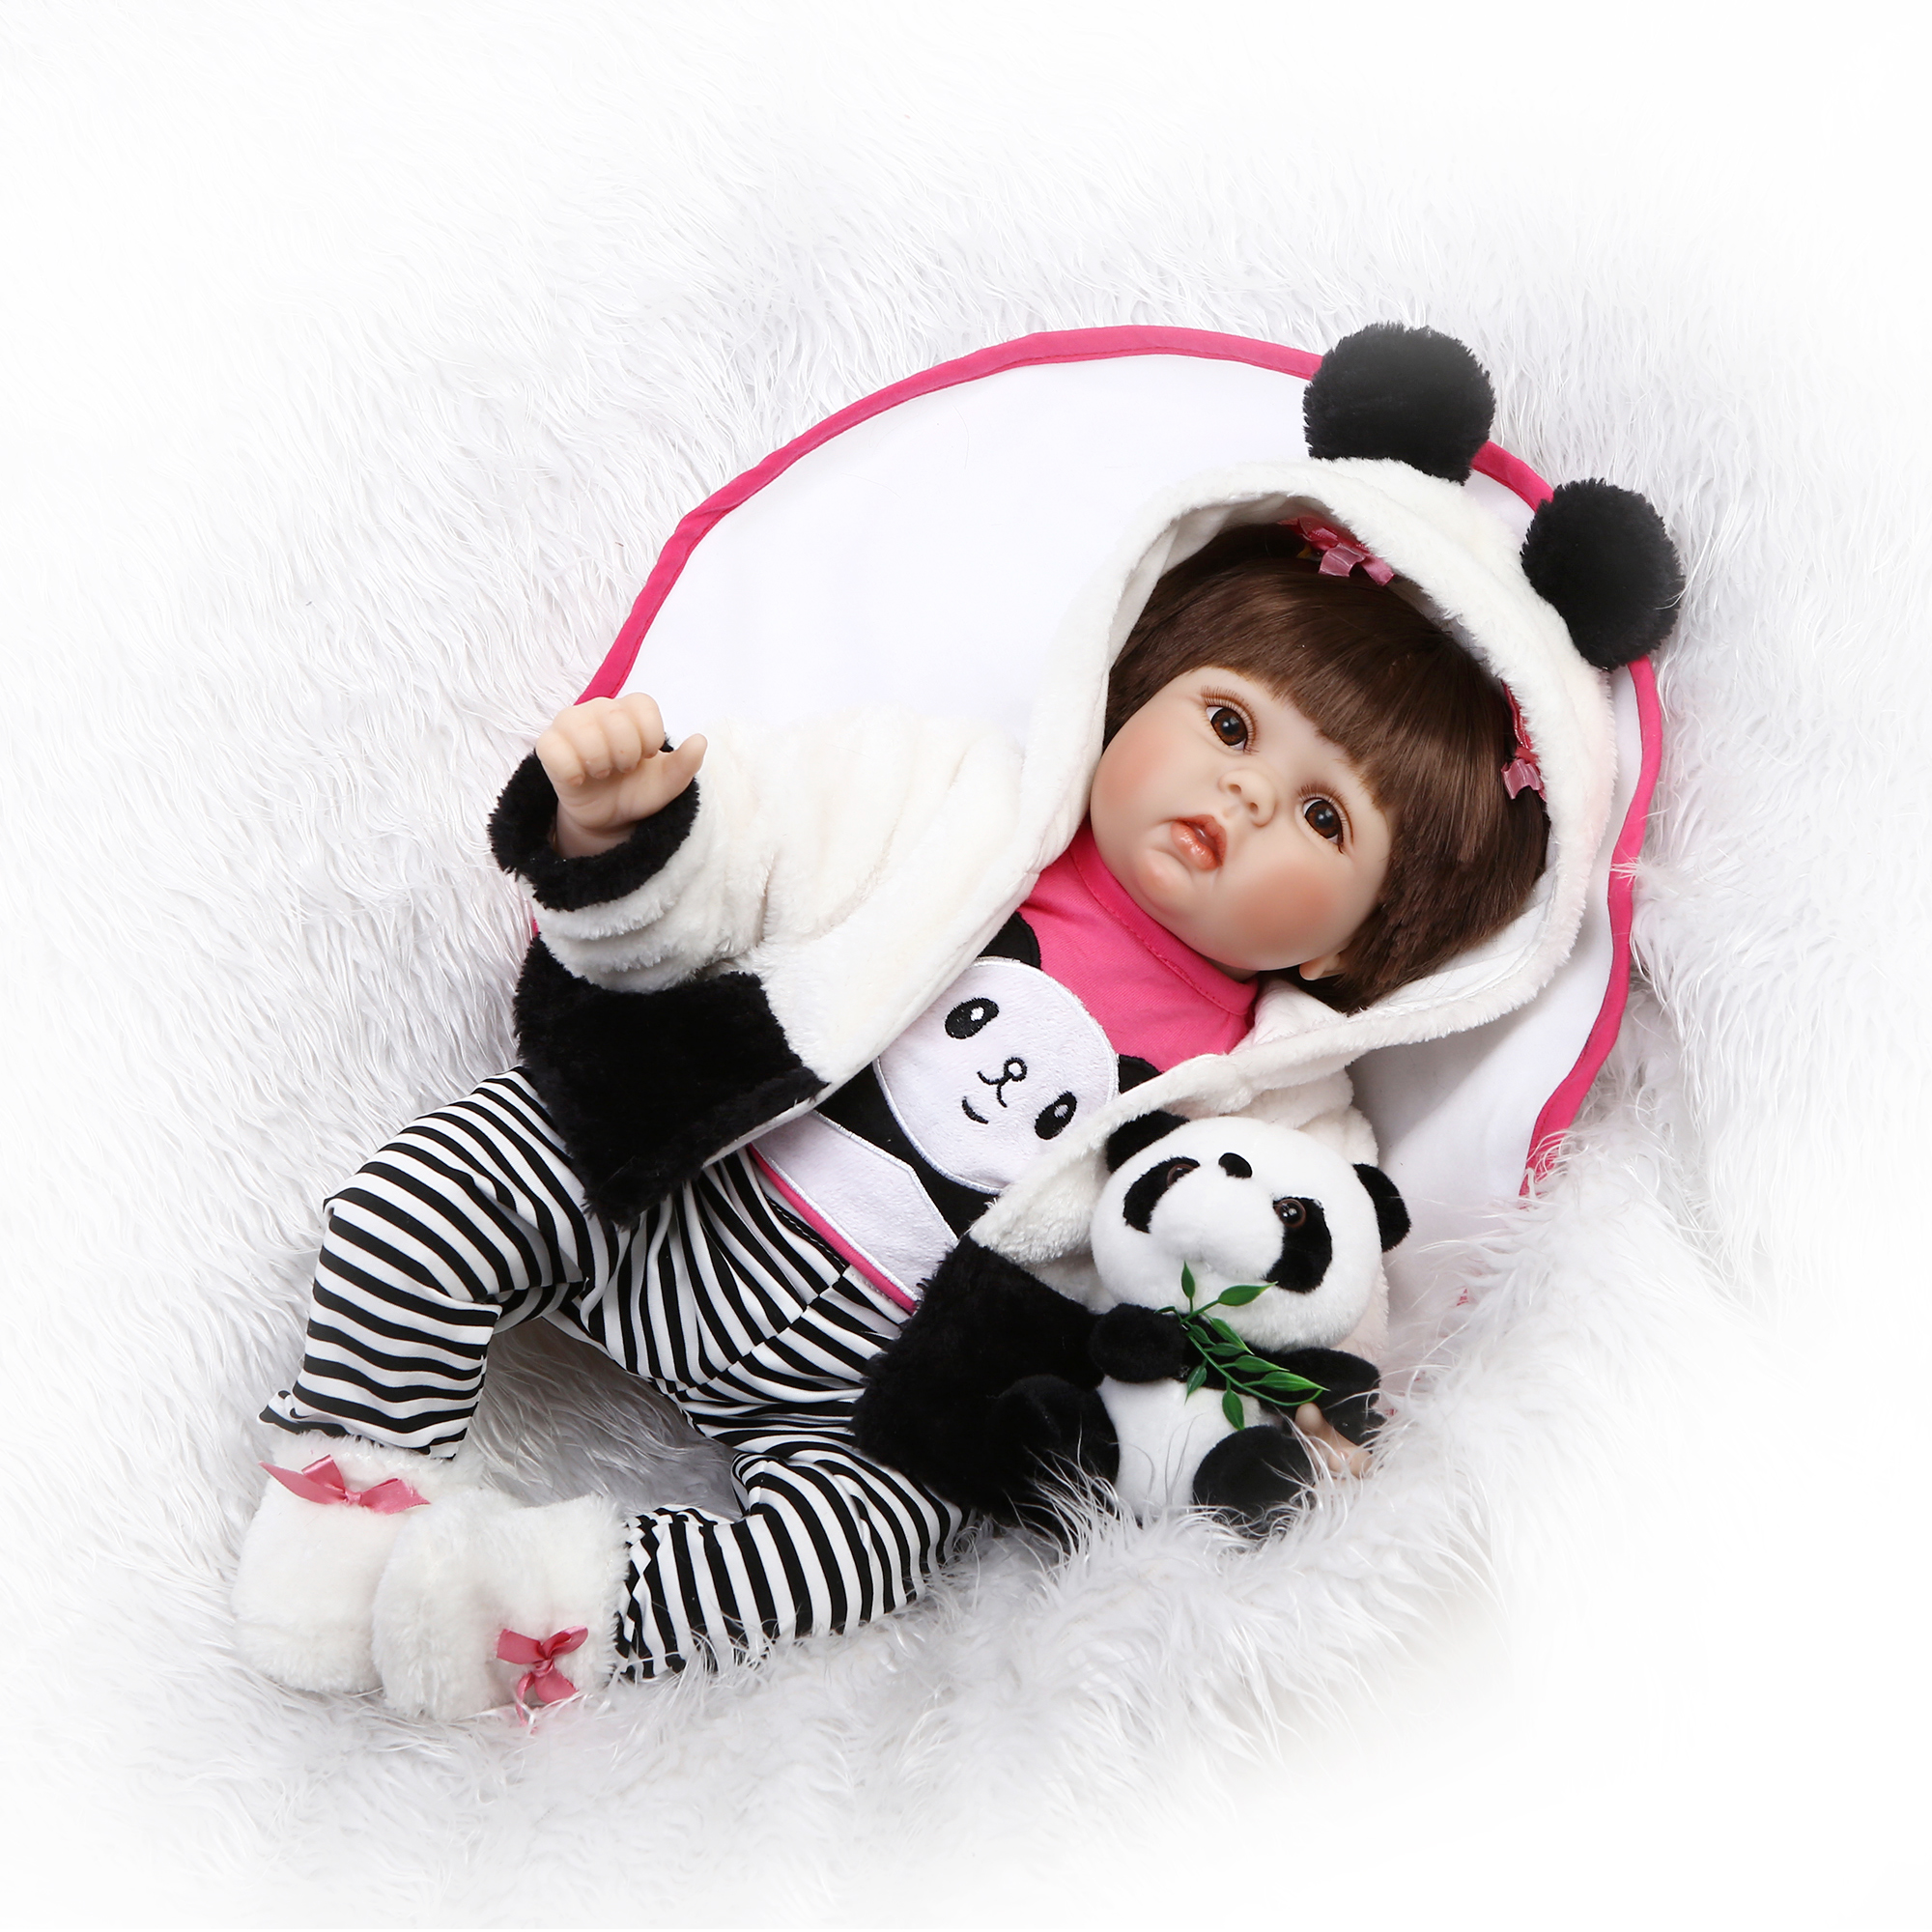 55cm Simulation Soft Silicone Reborn Baby Doll With Panda Toy Magnetic Pacifier Lovely Baby Soft Lifelike Doll Girl Toys simulation mini golf course display toy set with golf club ball flag